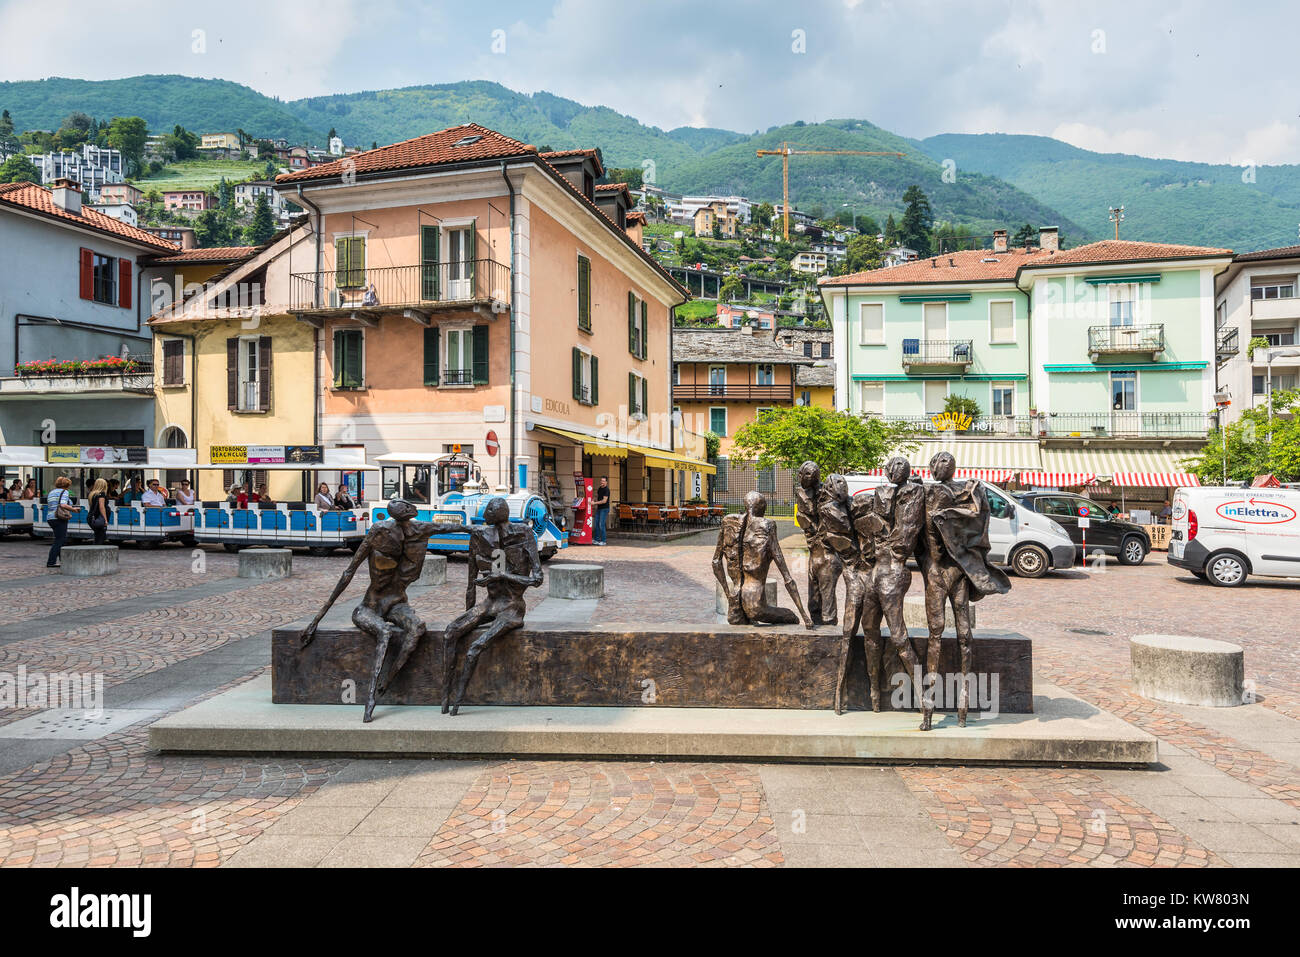 Locarno, Switzerland - May 28, 2016: Iron sculpture in Locarno, Switzerland. Locarno is a town located on the northern - Stock Image